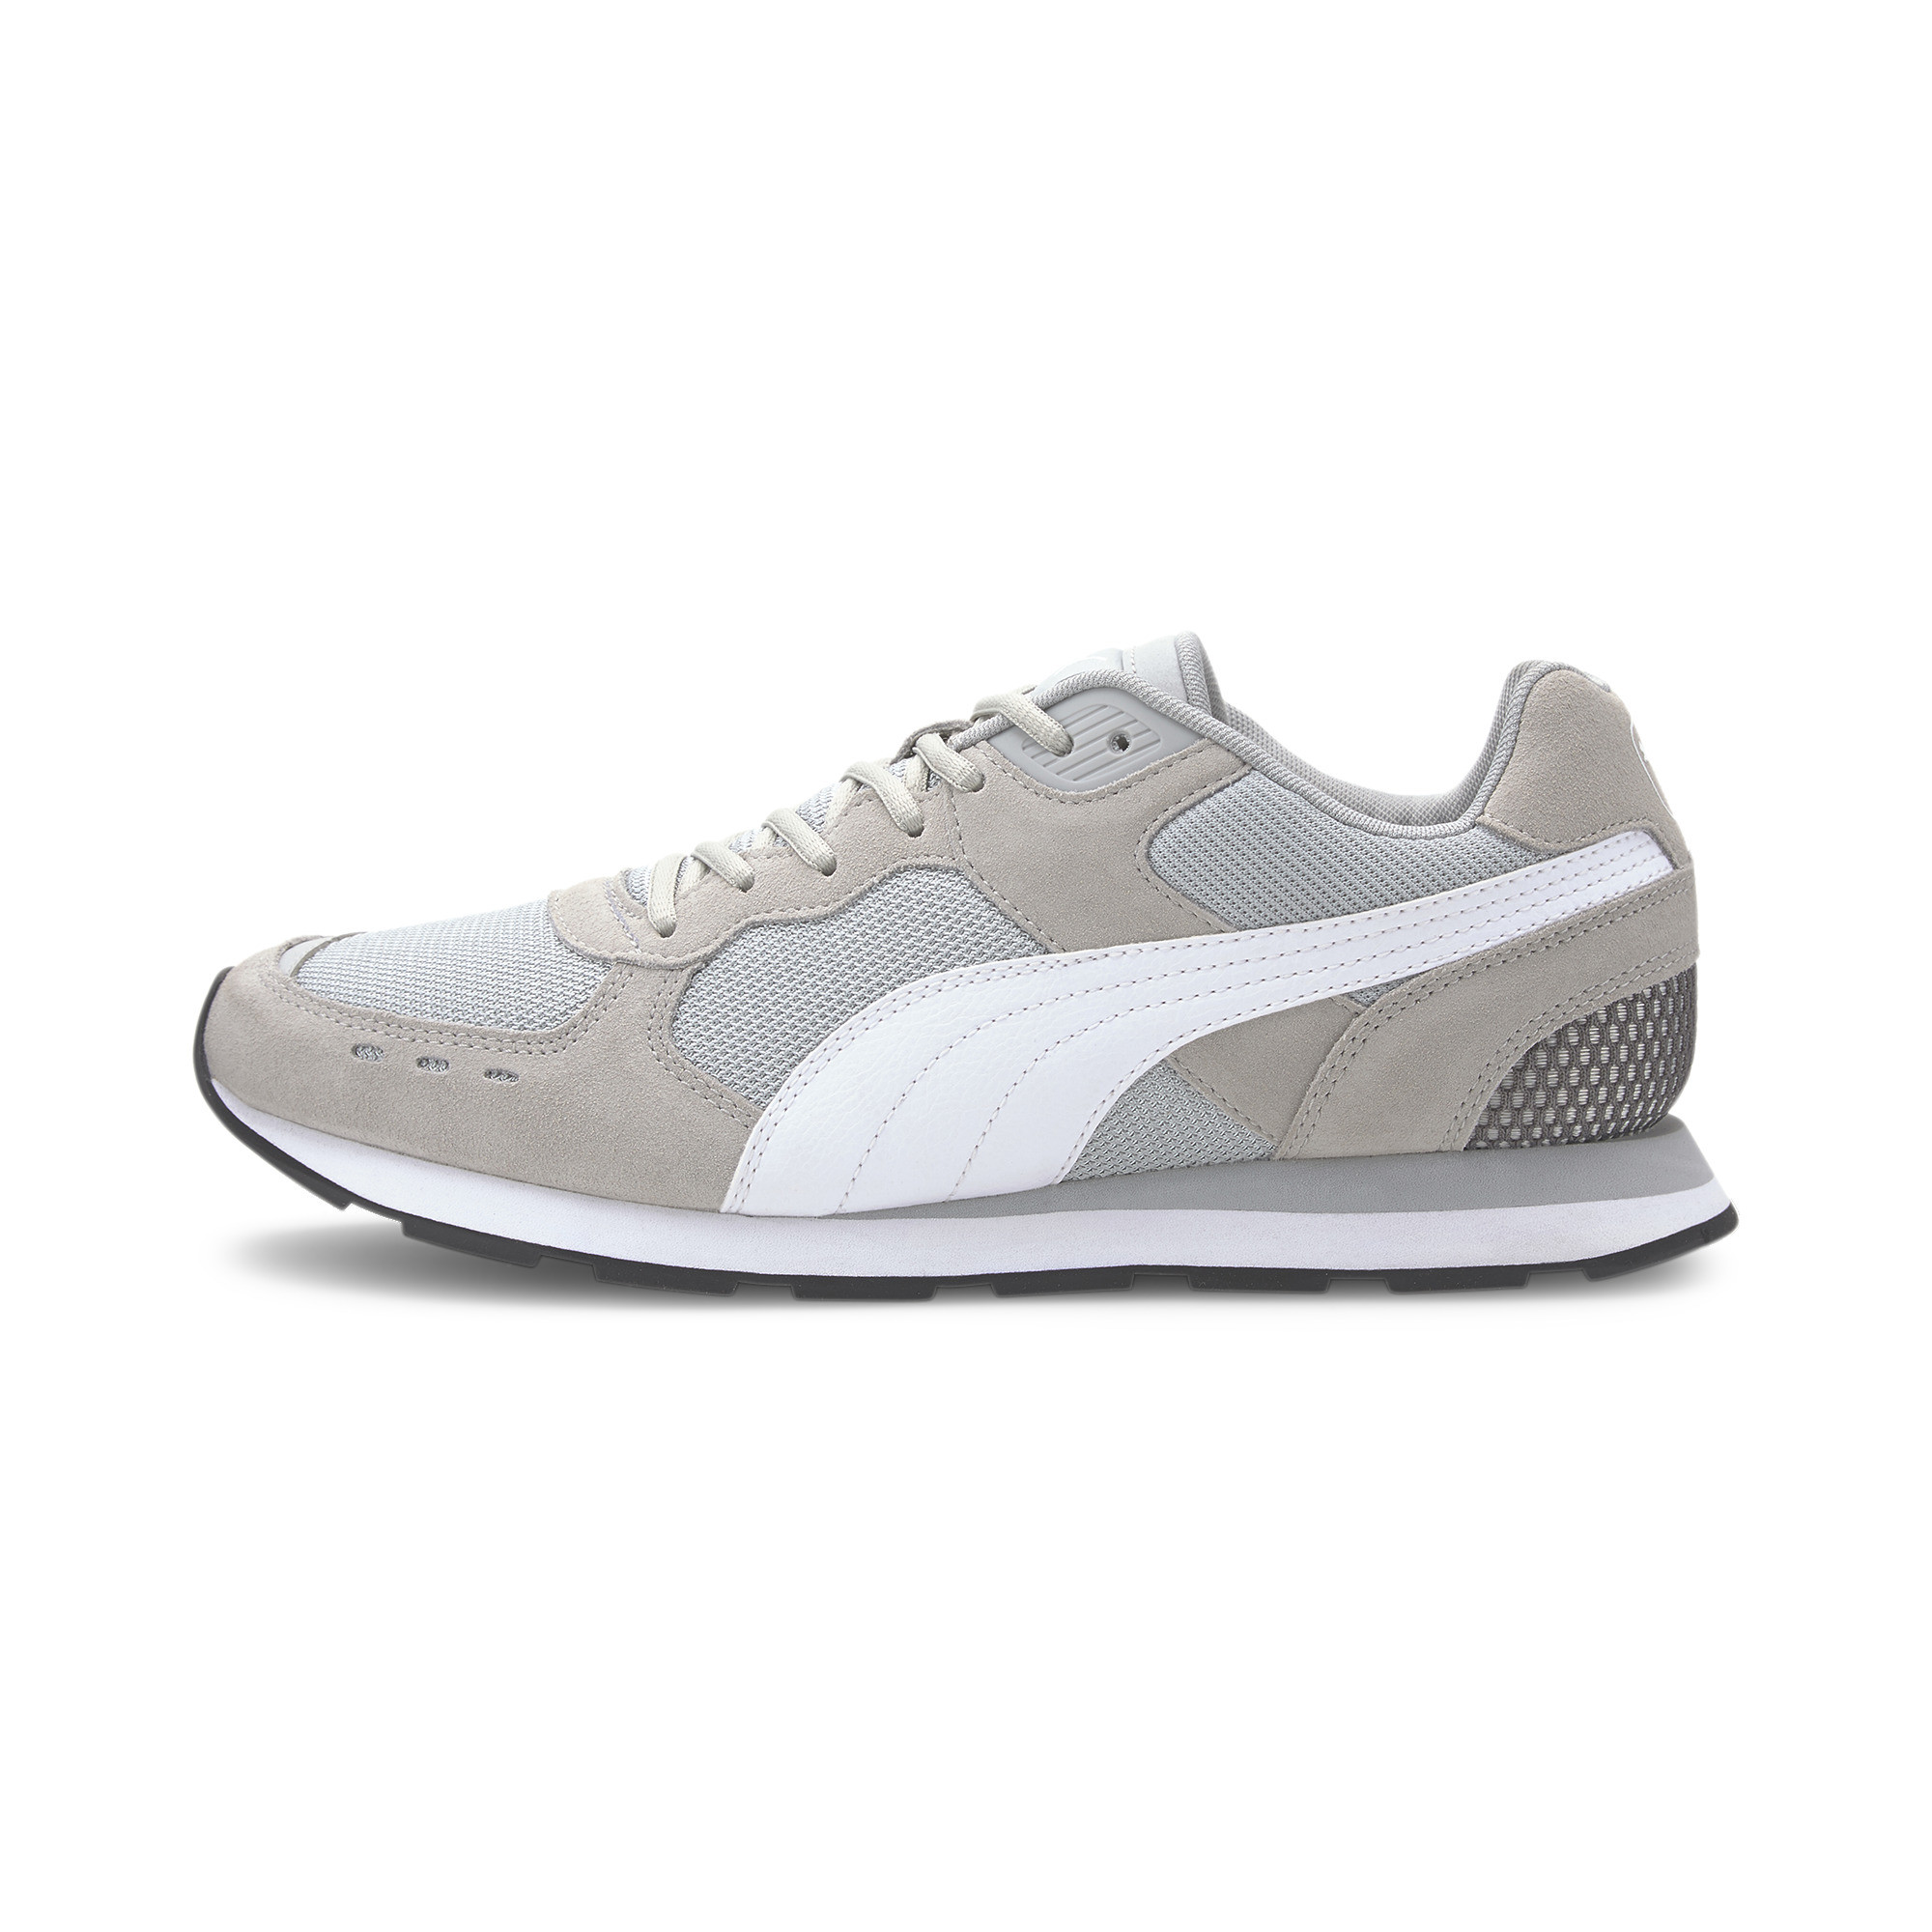 PUMA-Men-039-s-Vista-Sneakers thumbnail 31